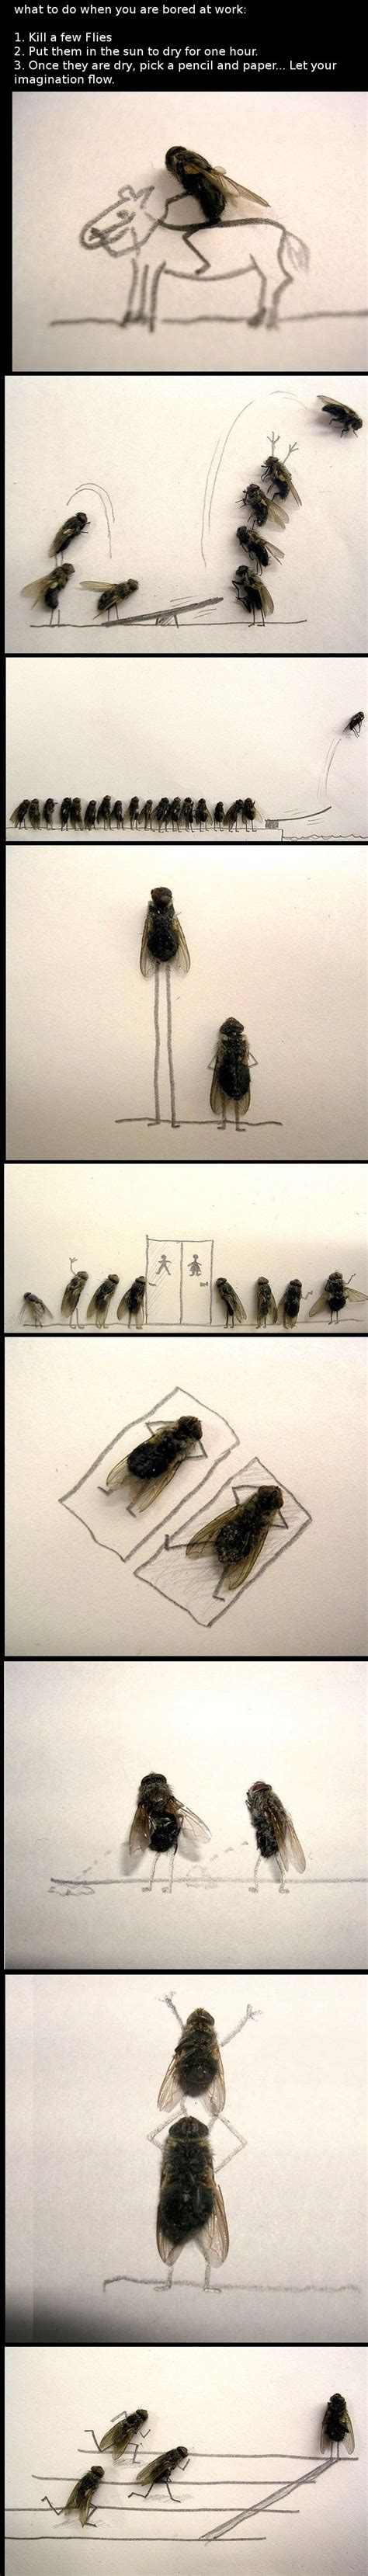 Bored How About Few by What To Do When You Are Bored At Work 1 Kill A Few Flies2